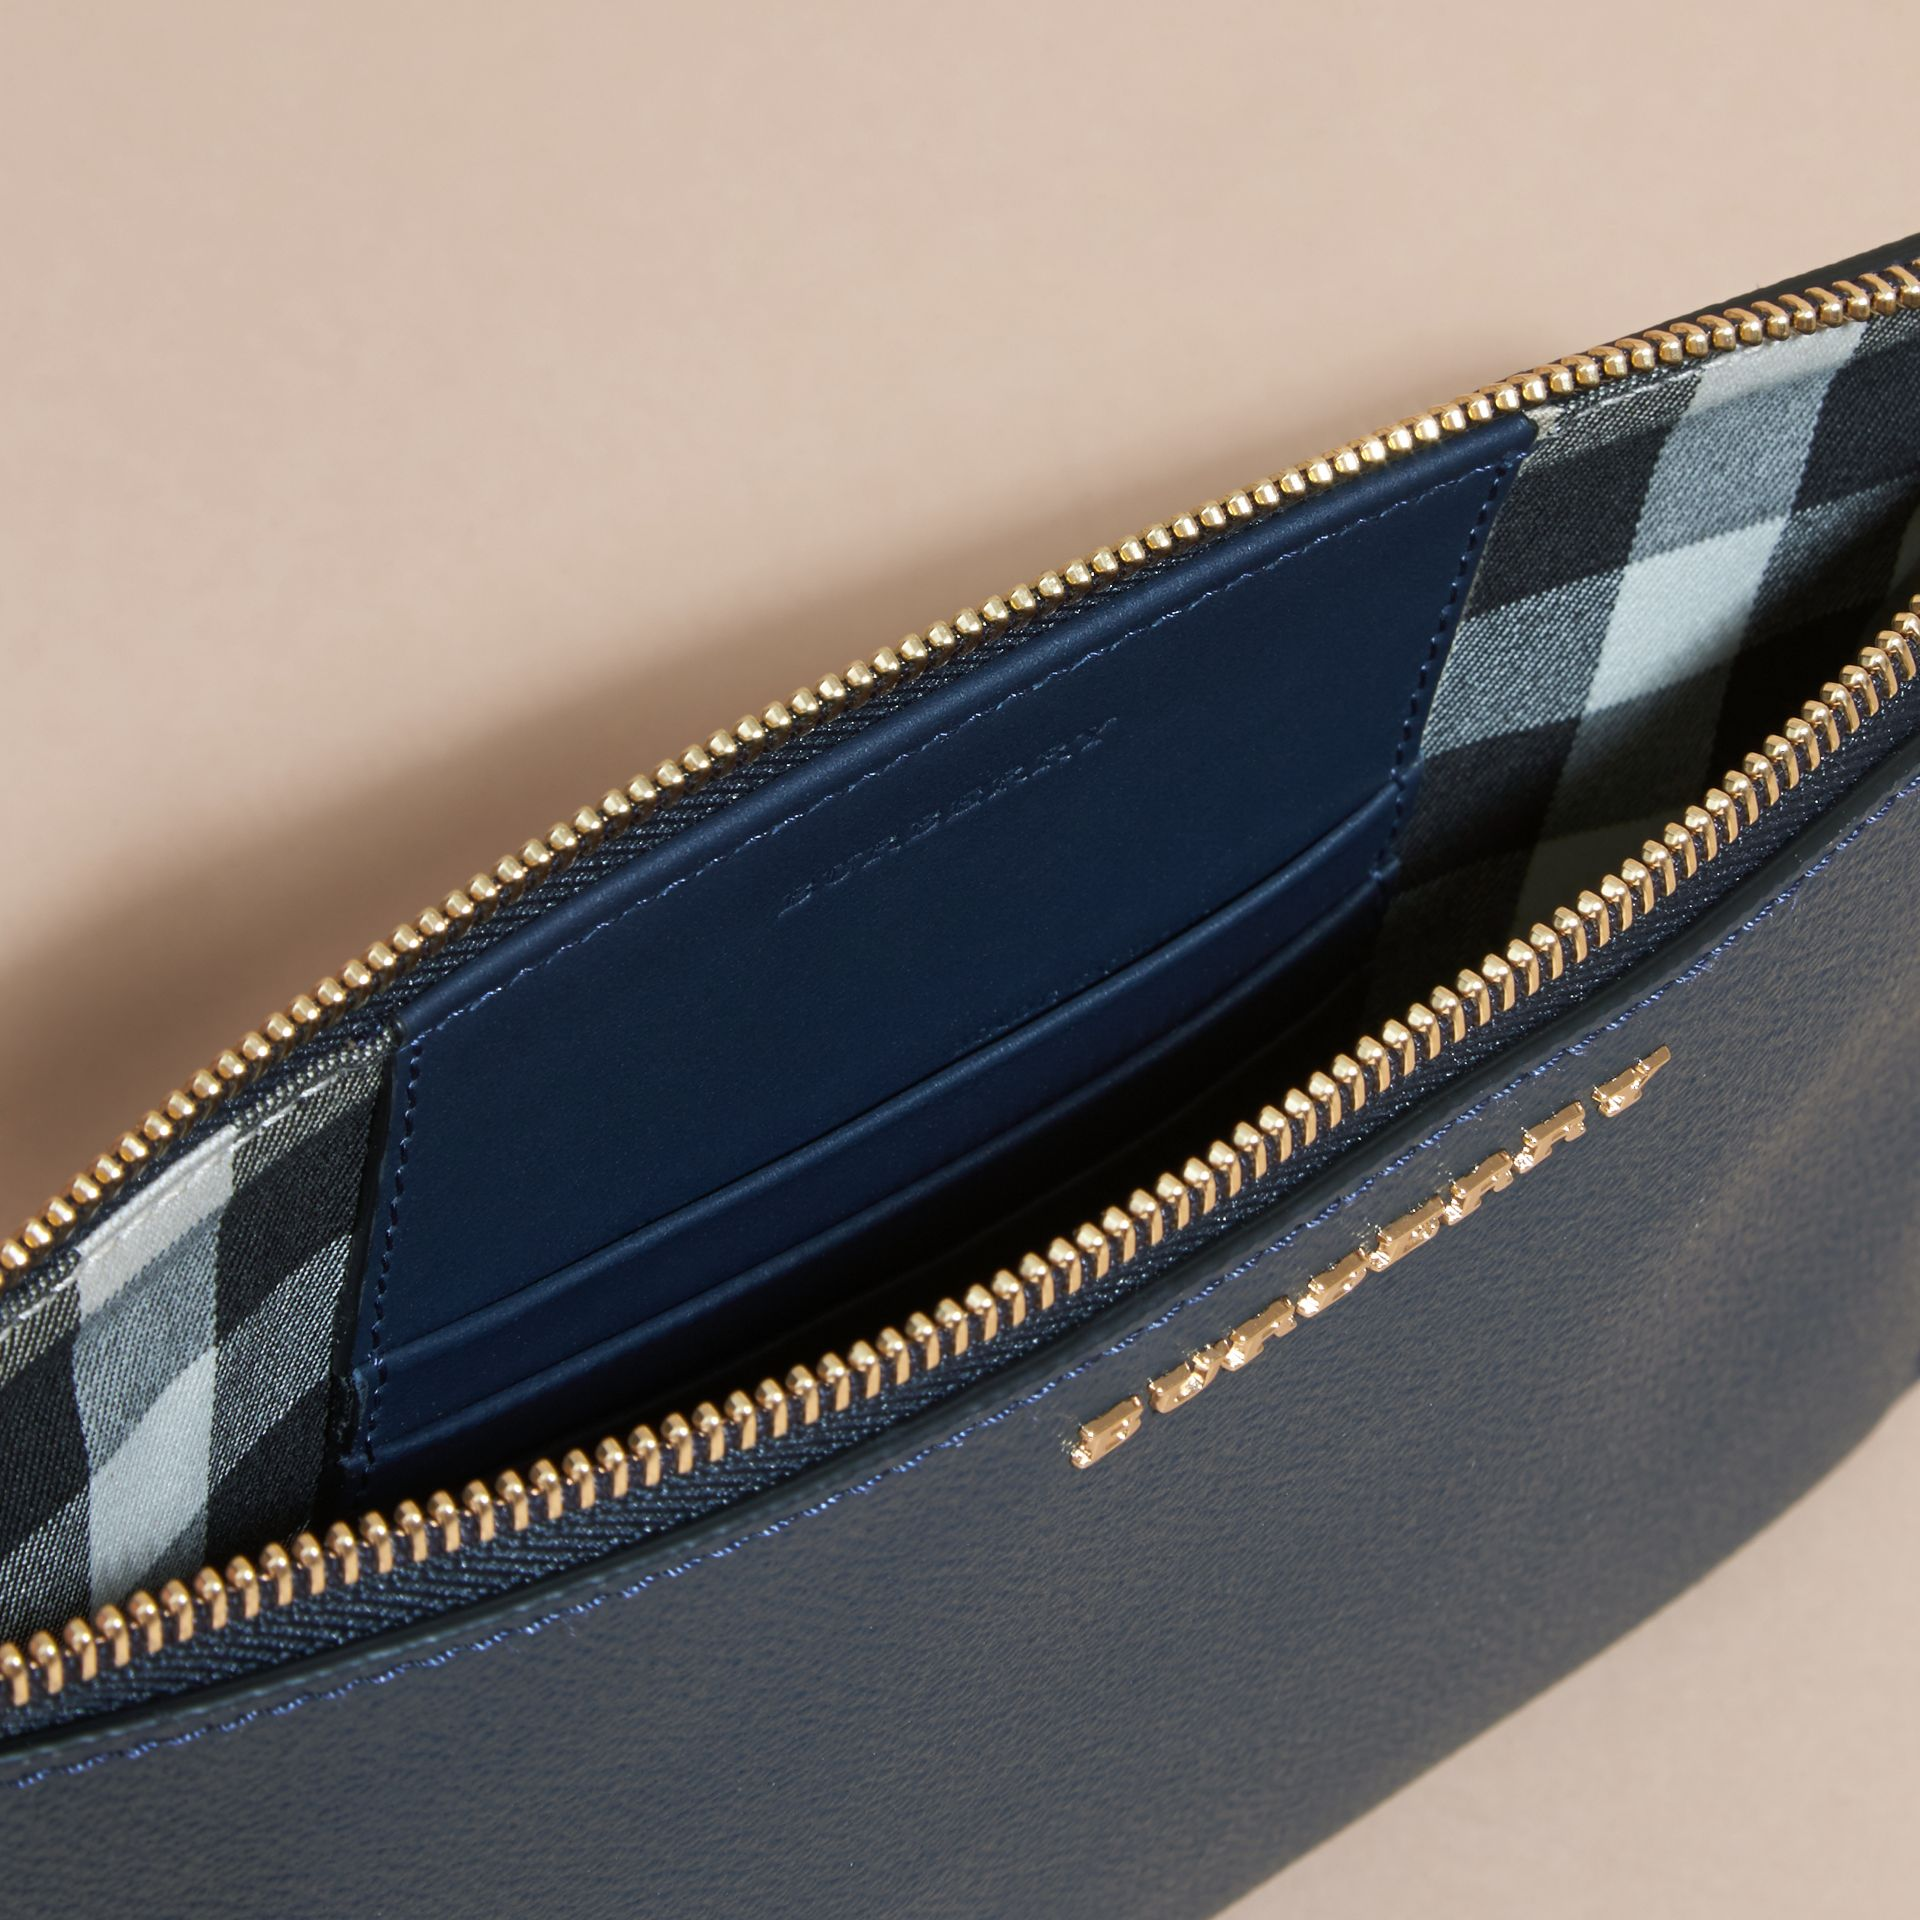 Leather Clutch Bag with Check Lining in Blue Carbon - gallery image 6